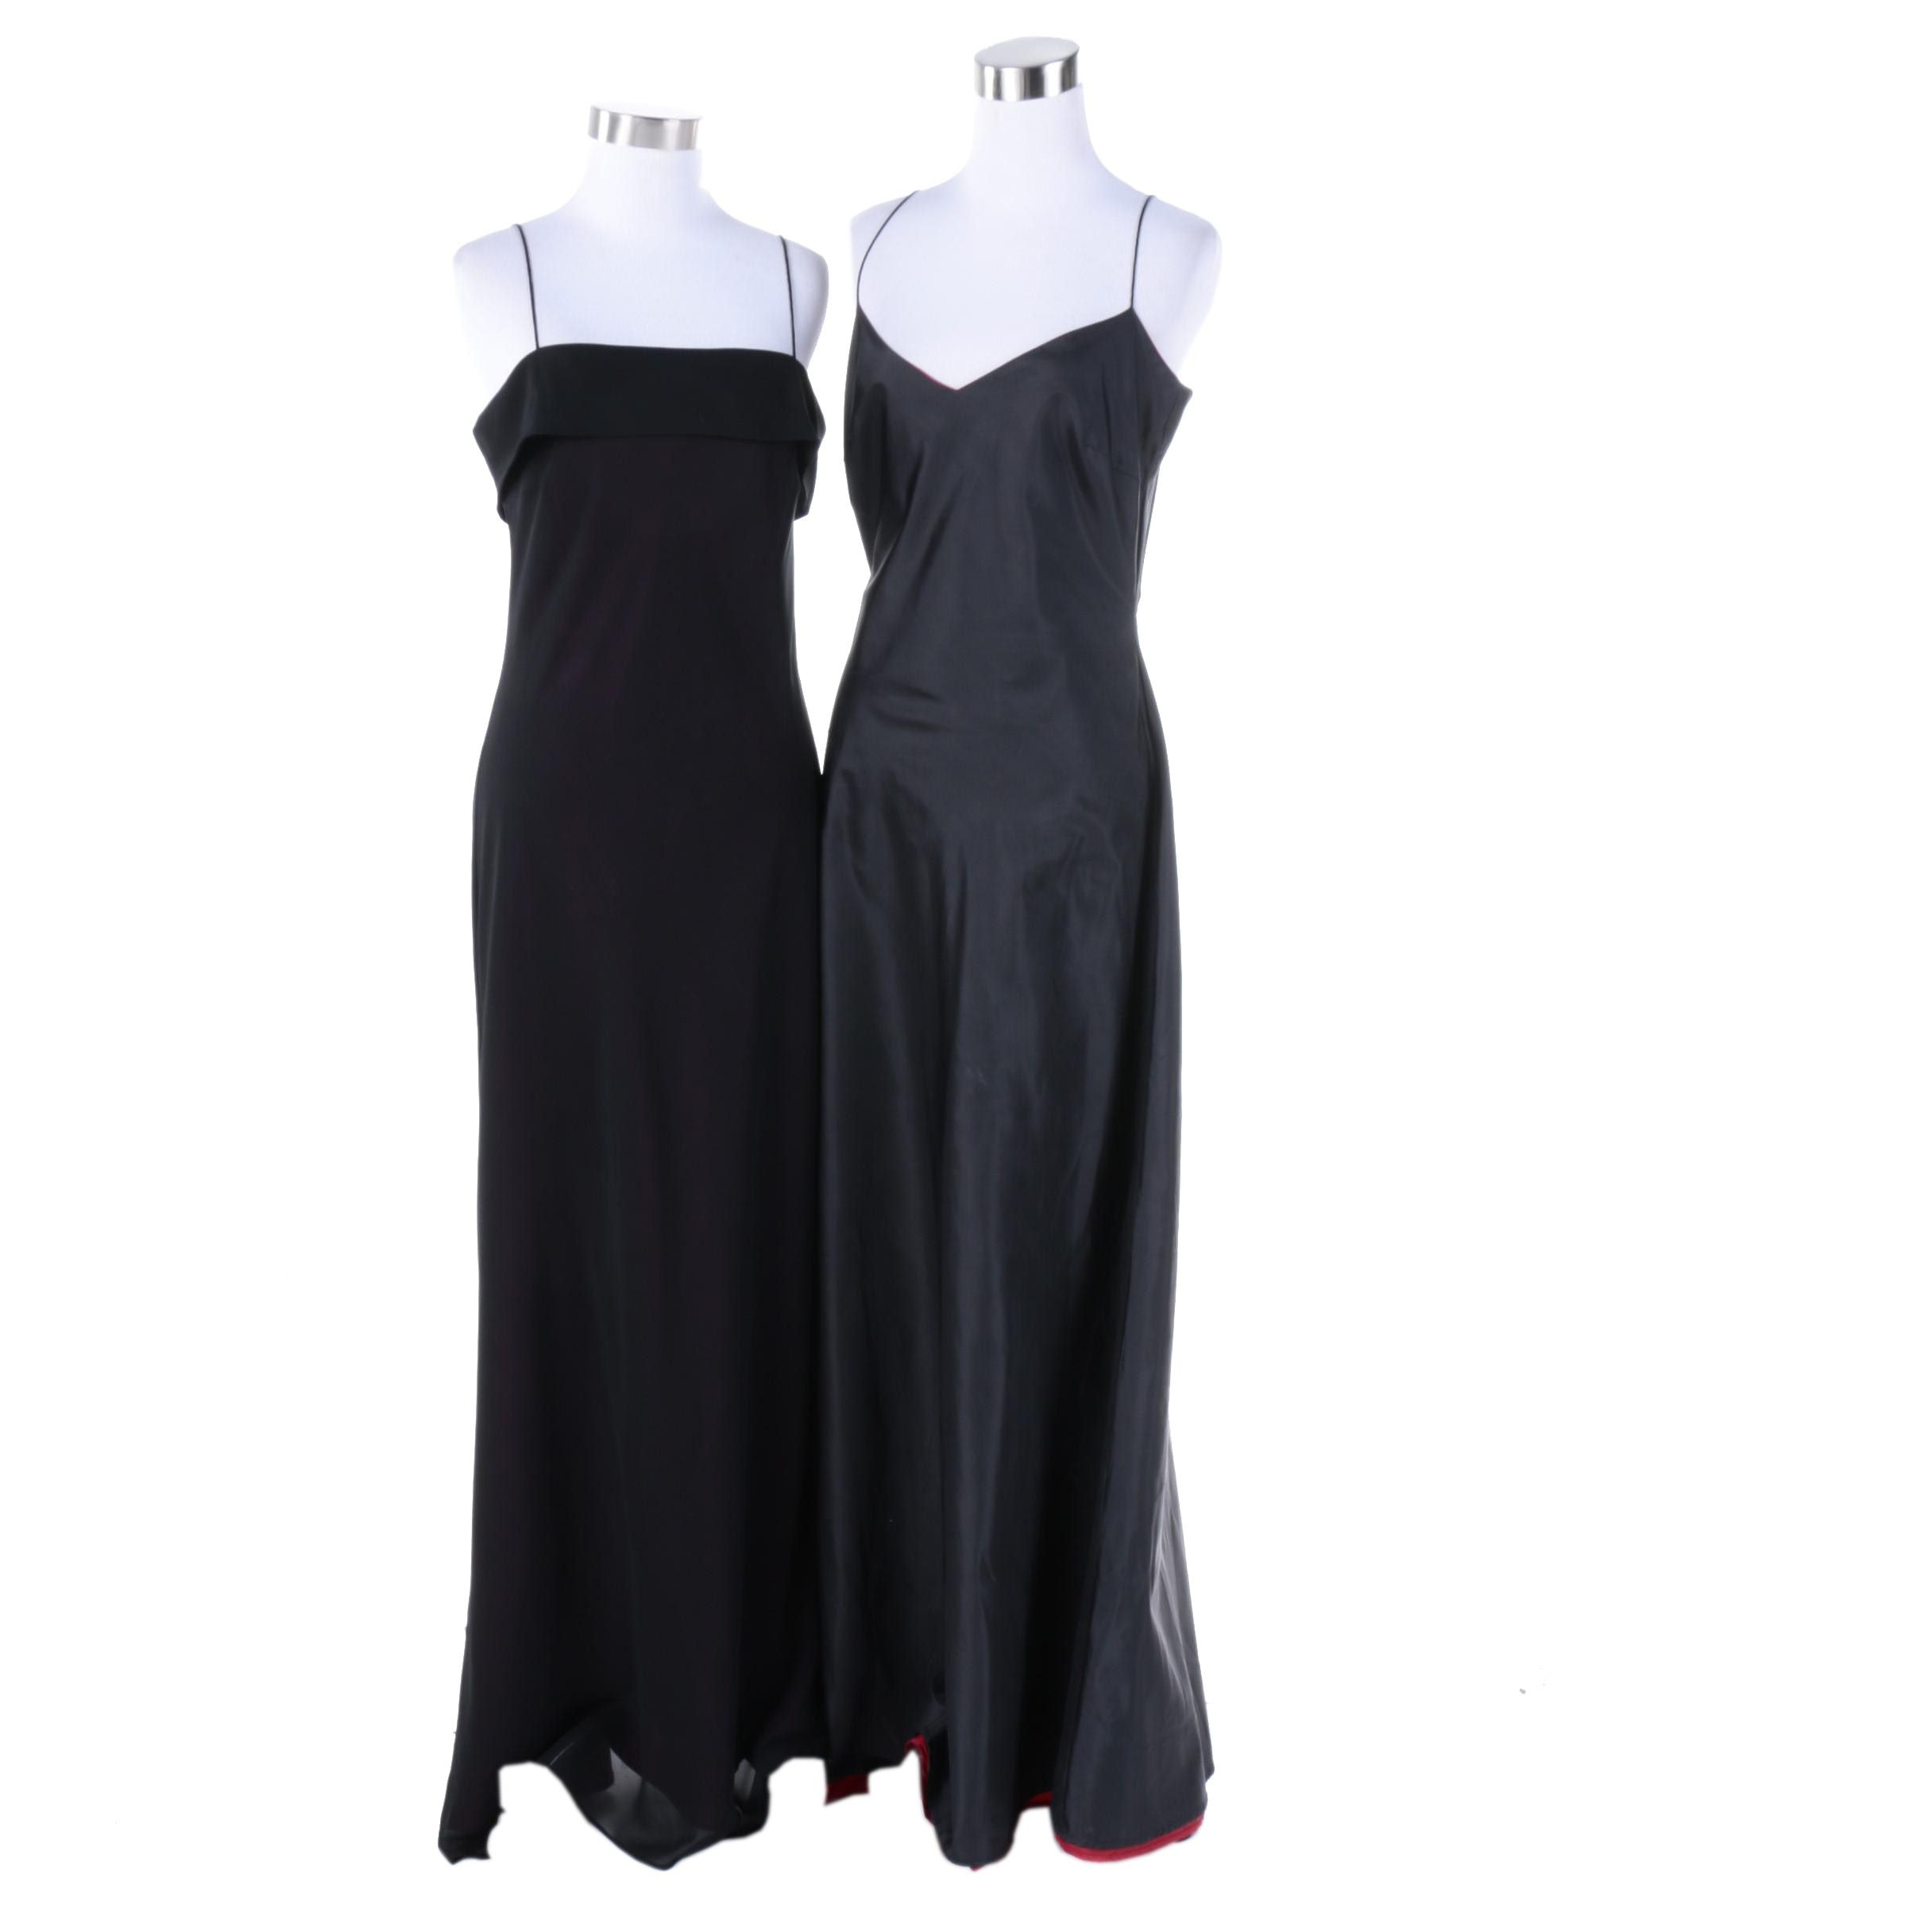 Evening Dresses Including Gina Bacconi